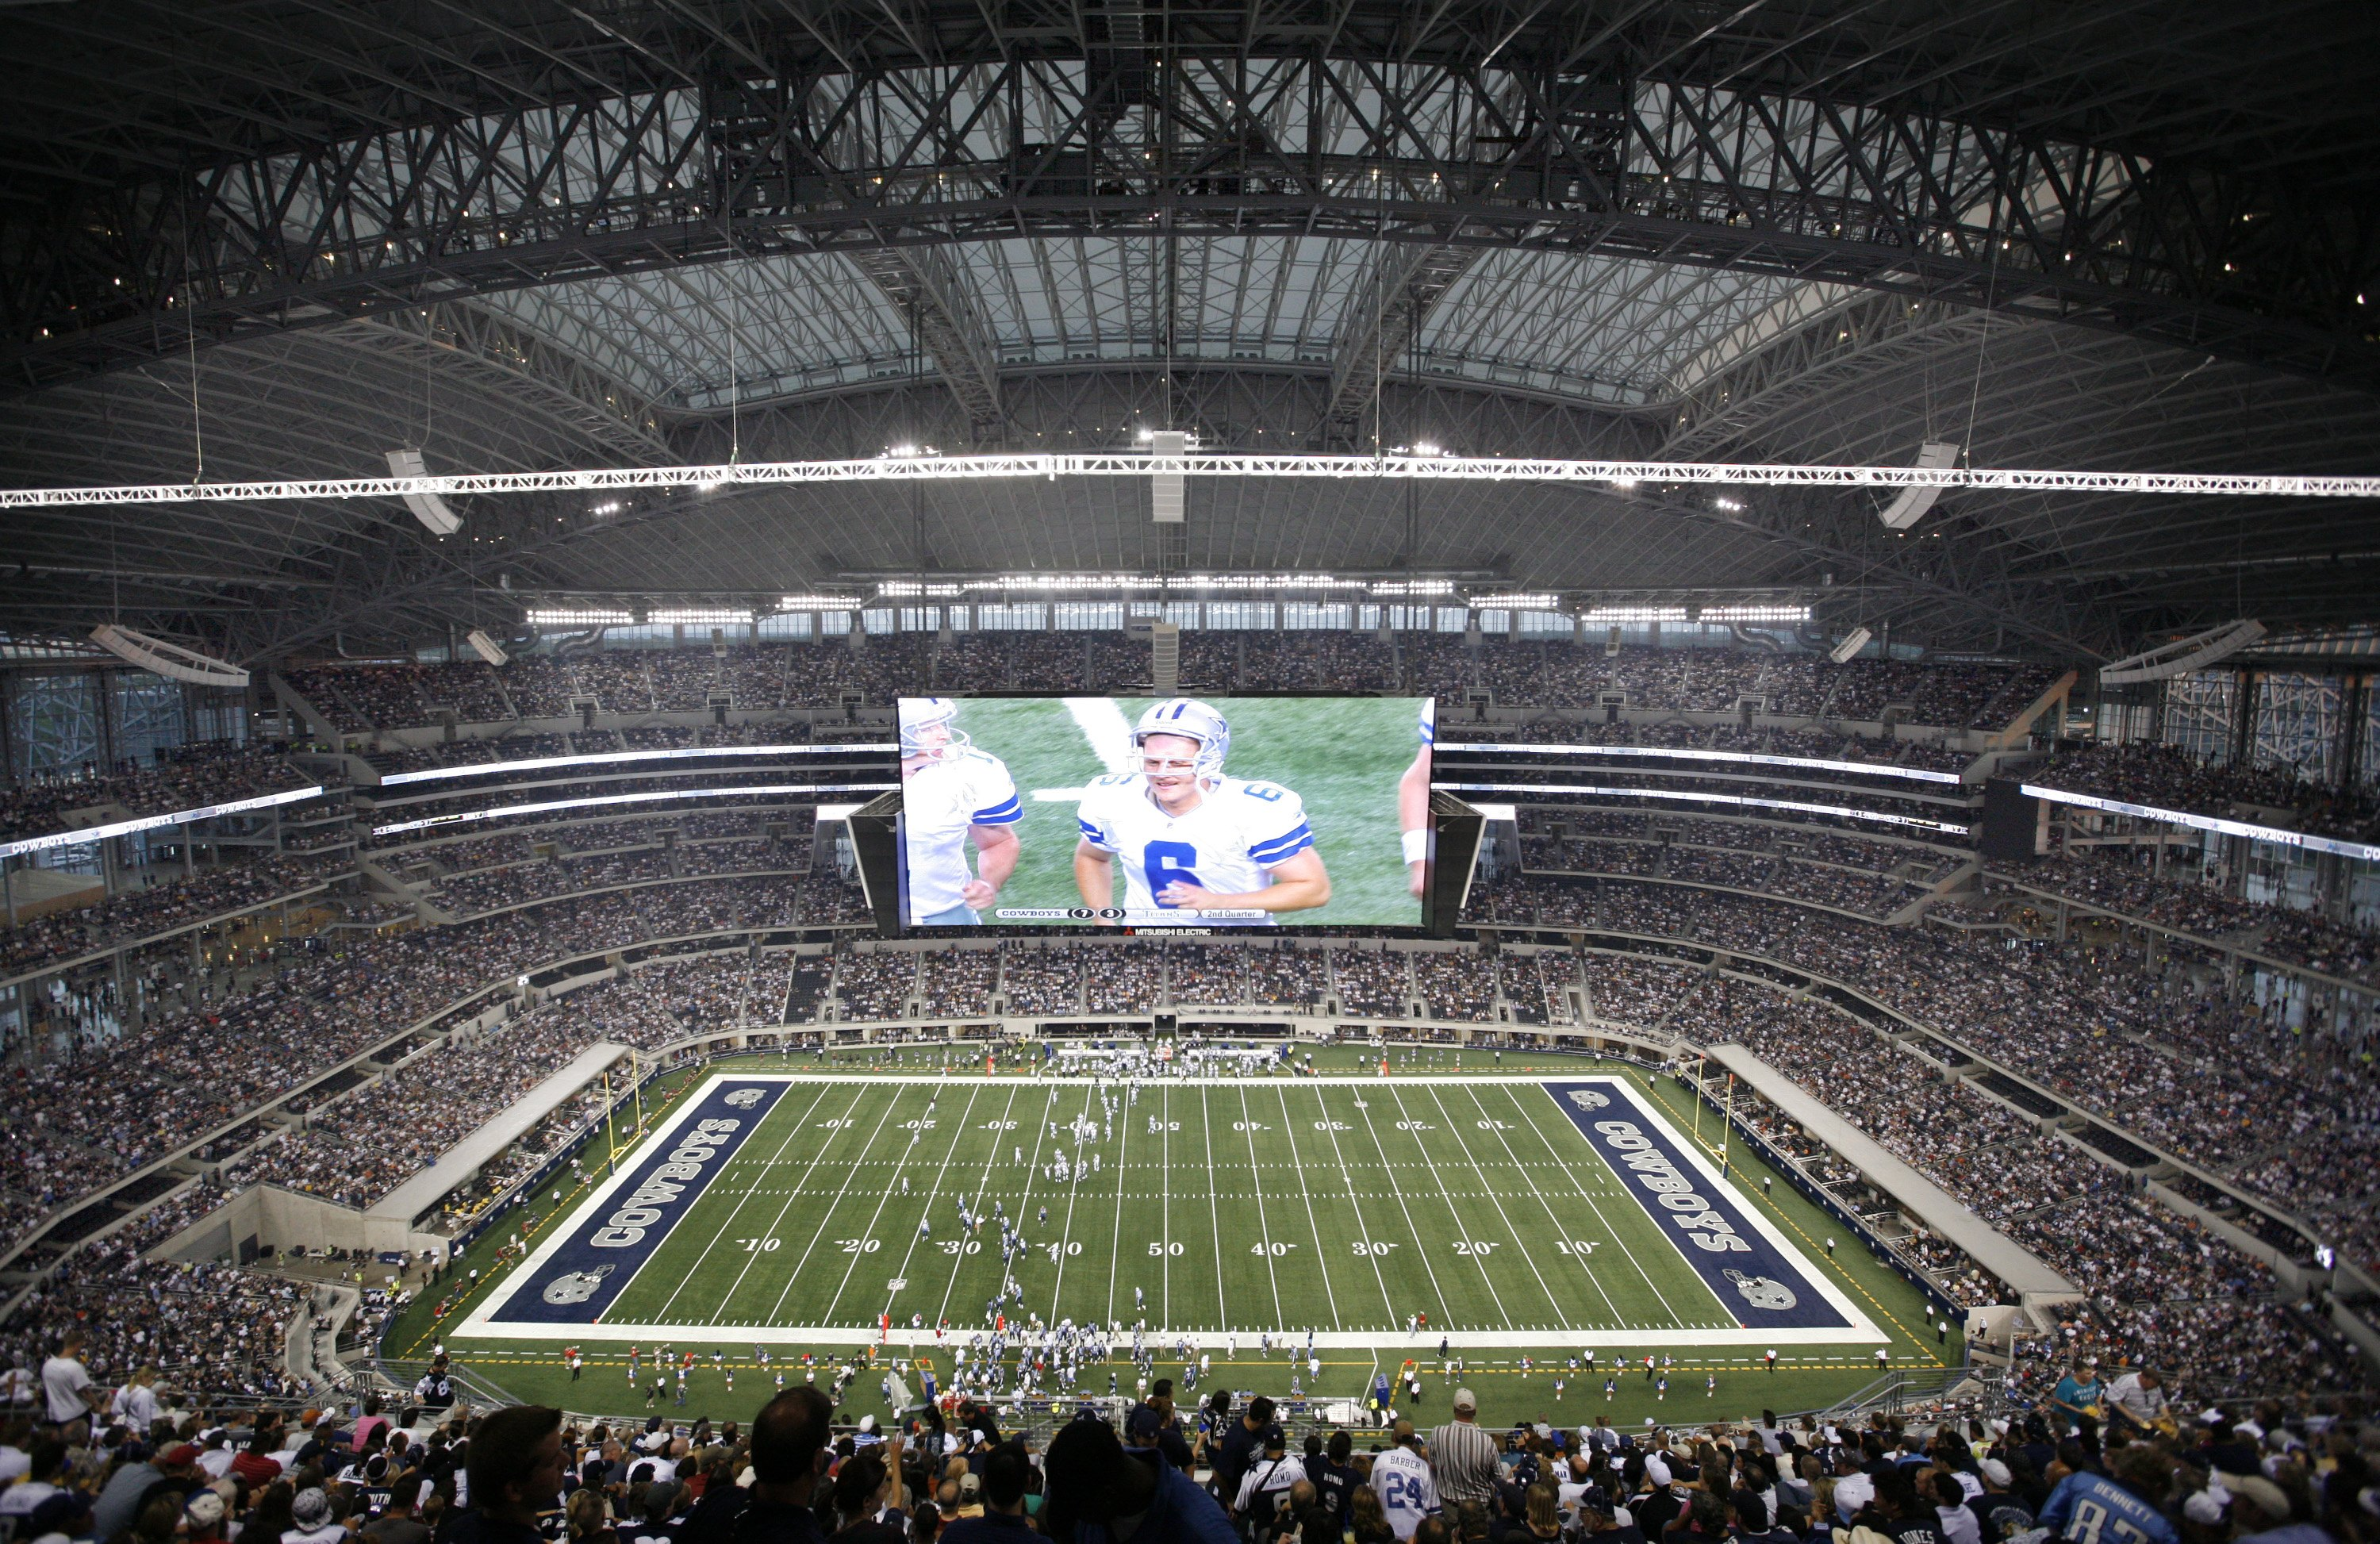 ARLINGTON, TX - AUGUST 21:  A general view of the Dallas Cowboys in the second quarter against the Tennessee Titans during a preseason game at Dallas Cowboys Stadium on August 21, 2009 in Arlington, Texas. (Photo by Tom Pennington/Getty Images)